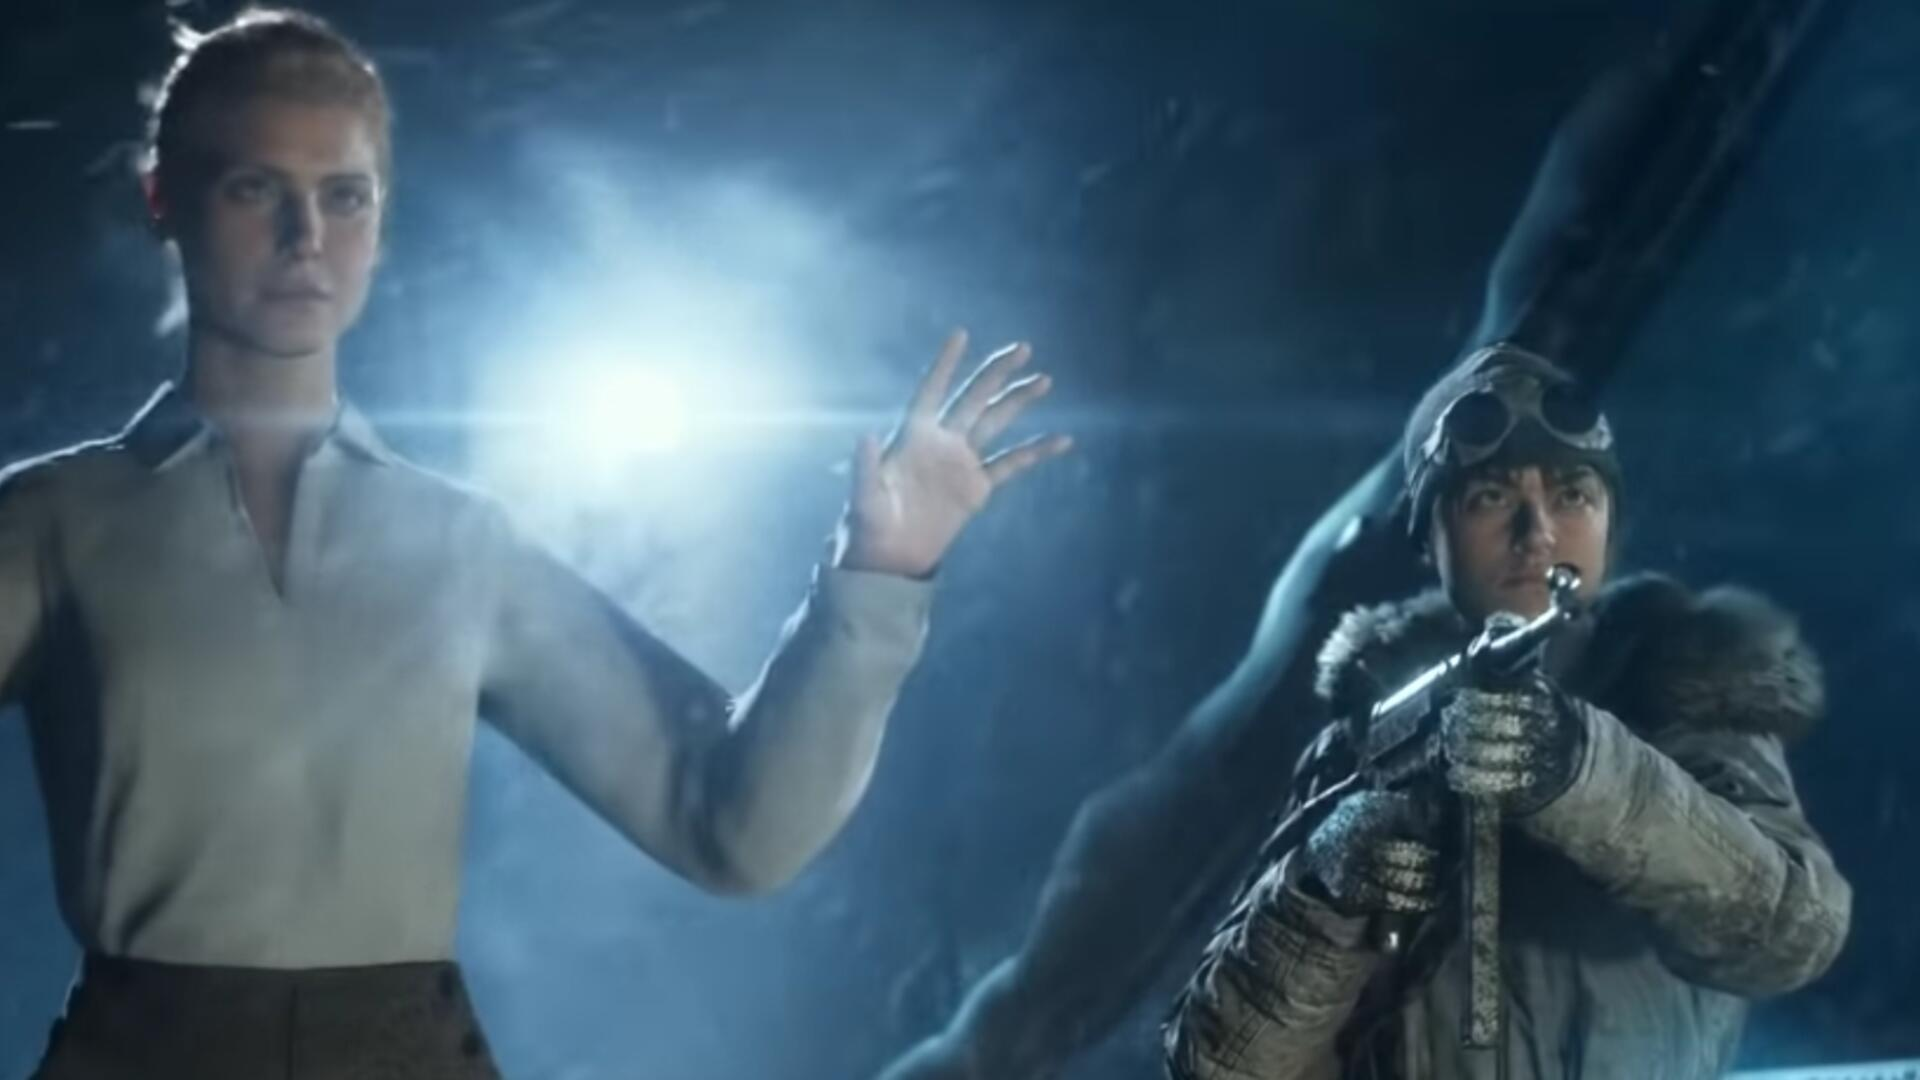 Battlefield 5 War Stories Trailer is a Reminder That Shooters Can Still Have Single-Player Campaigns